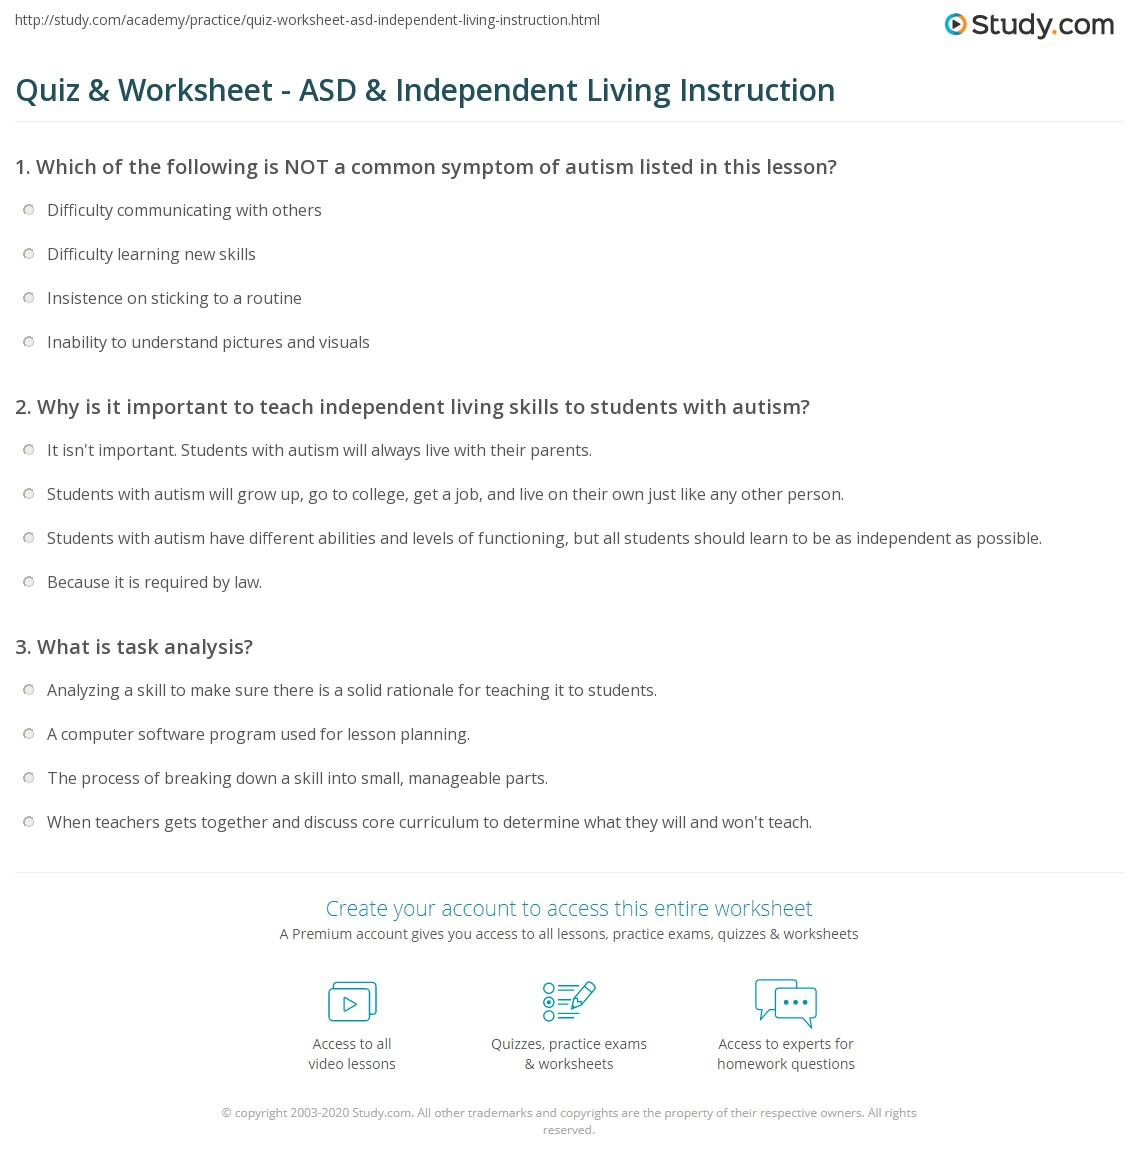 quiz worksheet asd independent living instruction study com print teaching independent living skills to students autism worksheet